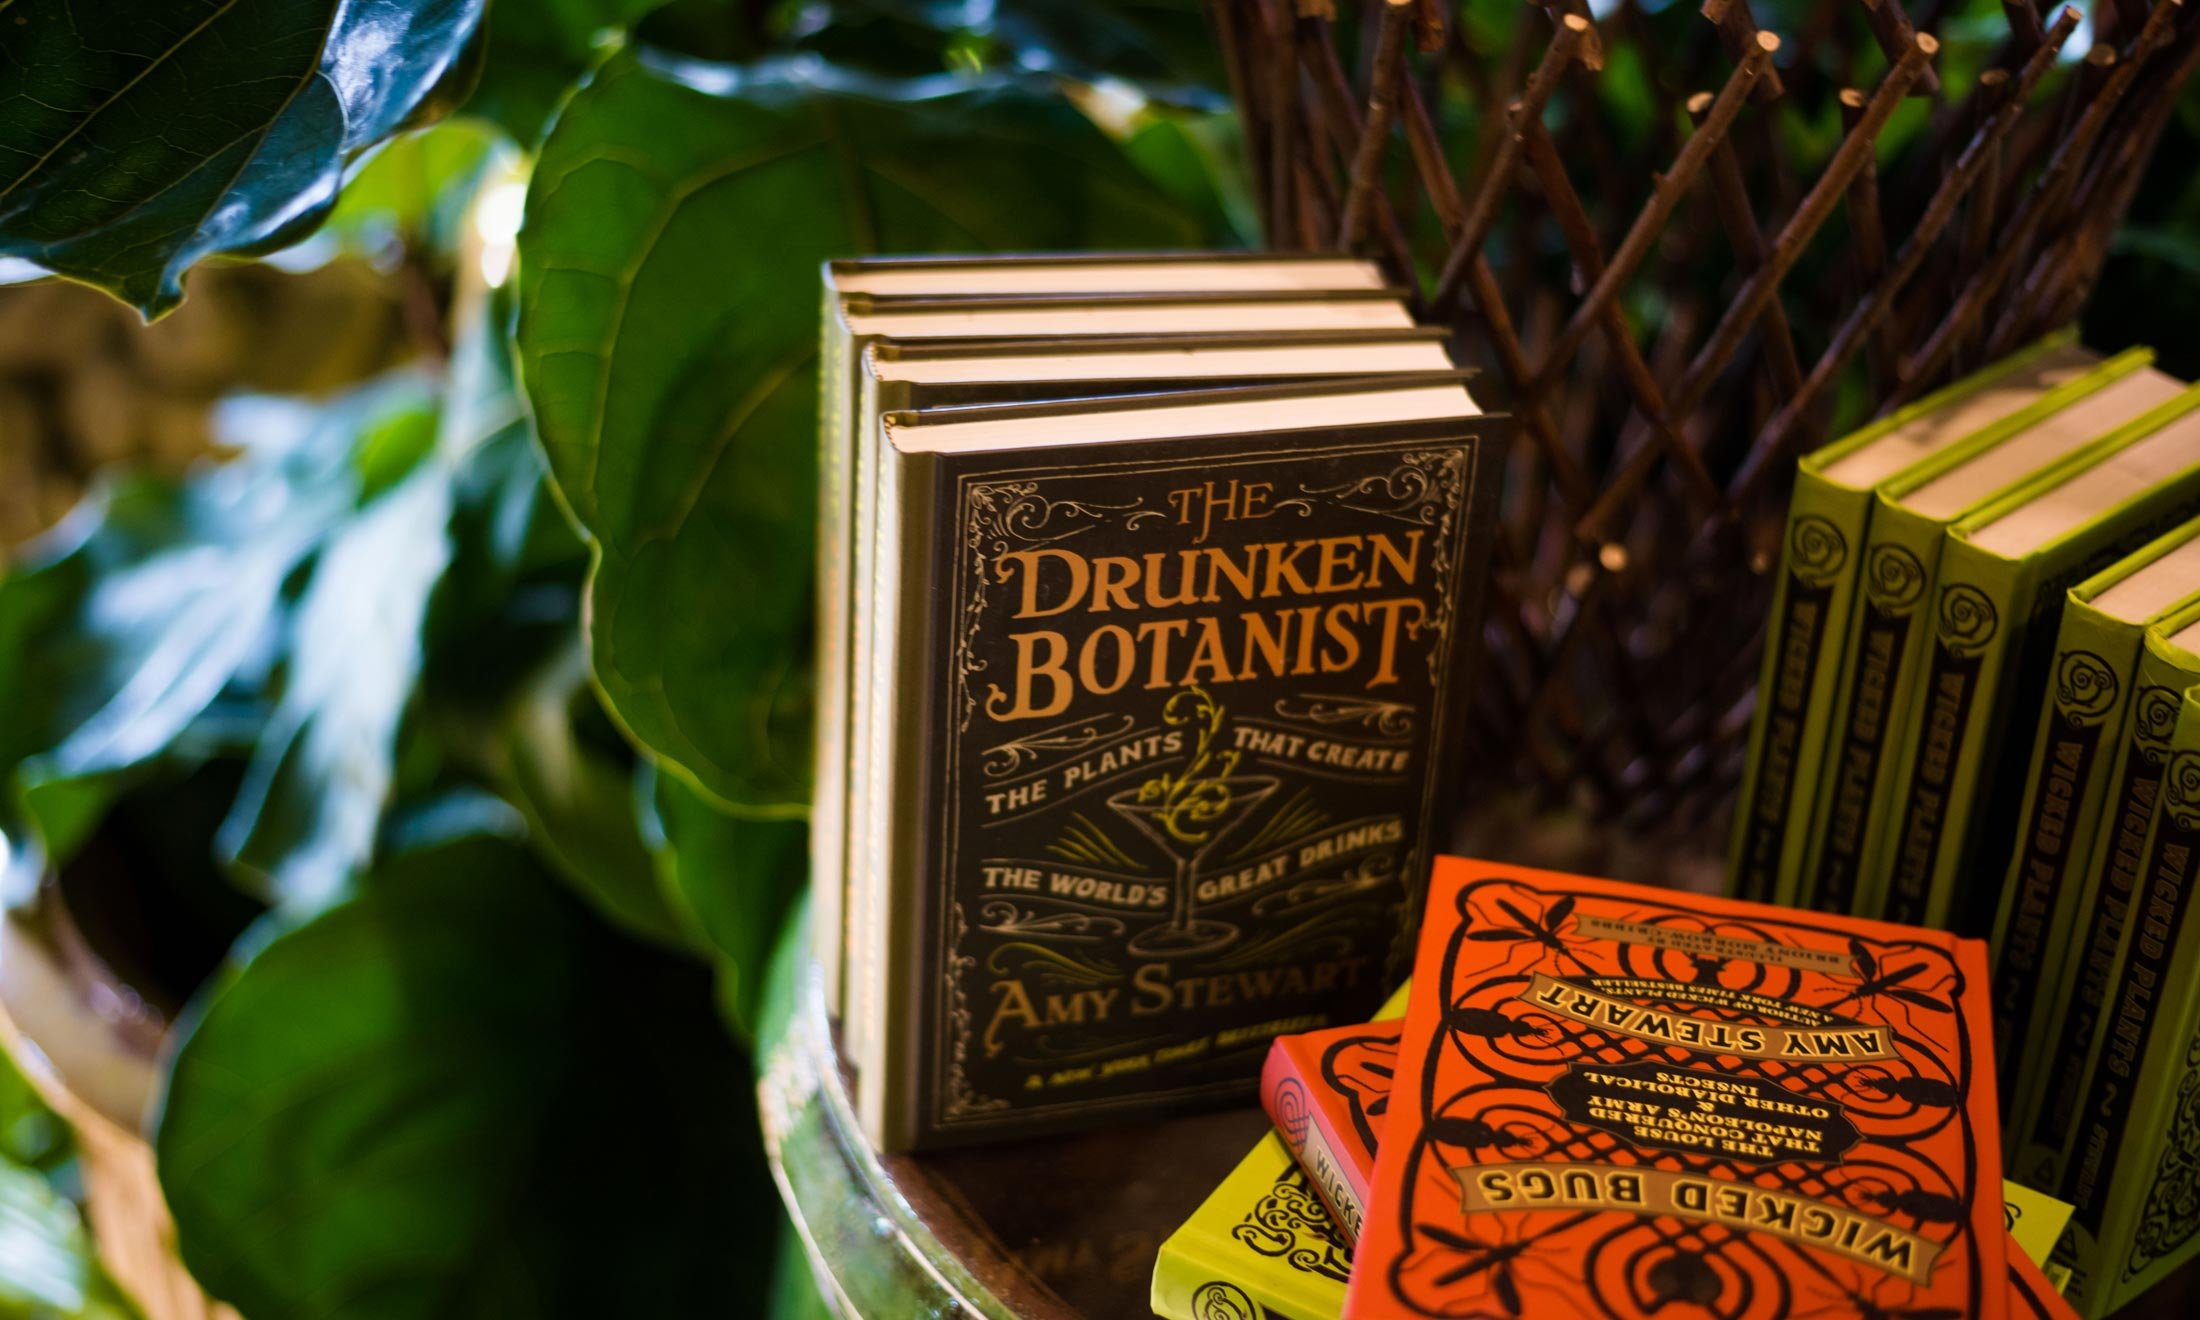 Casual reading for the casual gardener inside the Garden Shoppe at fleurdetroit - Books on a table